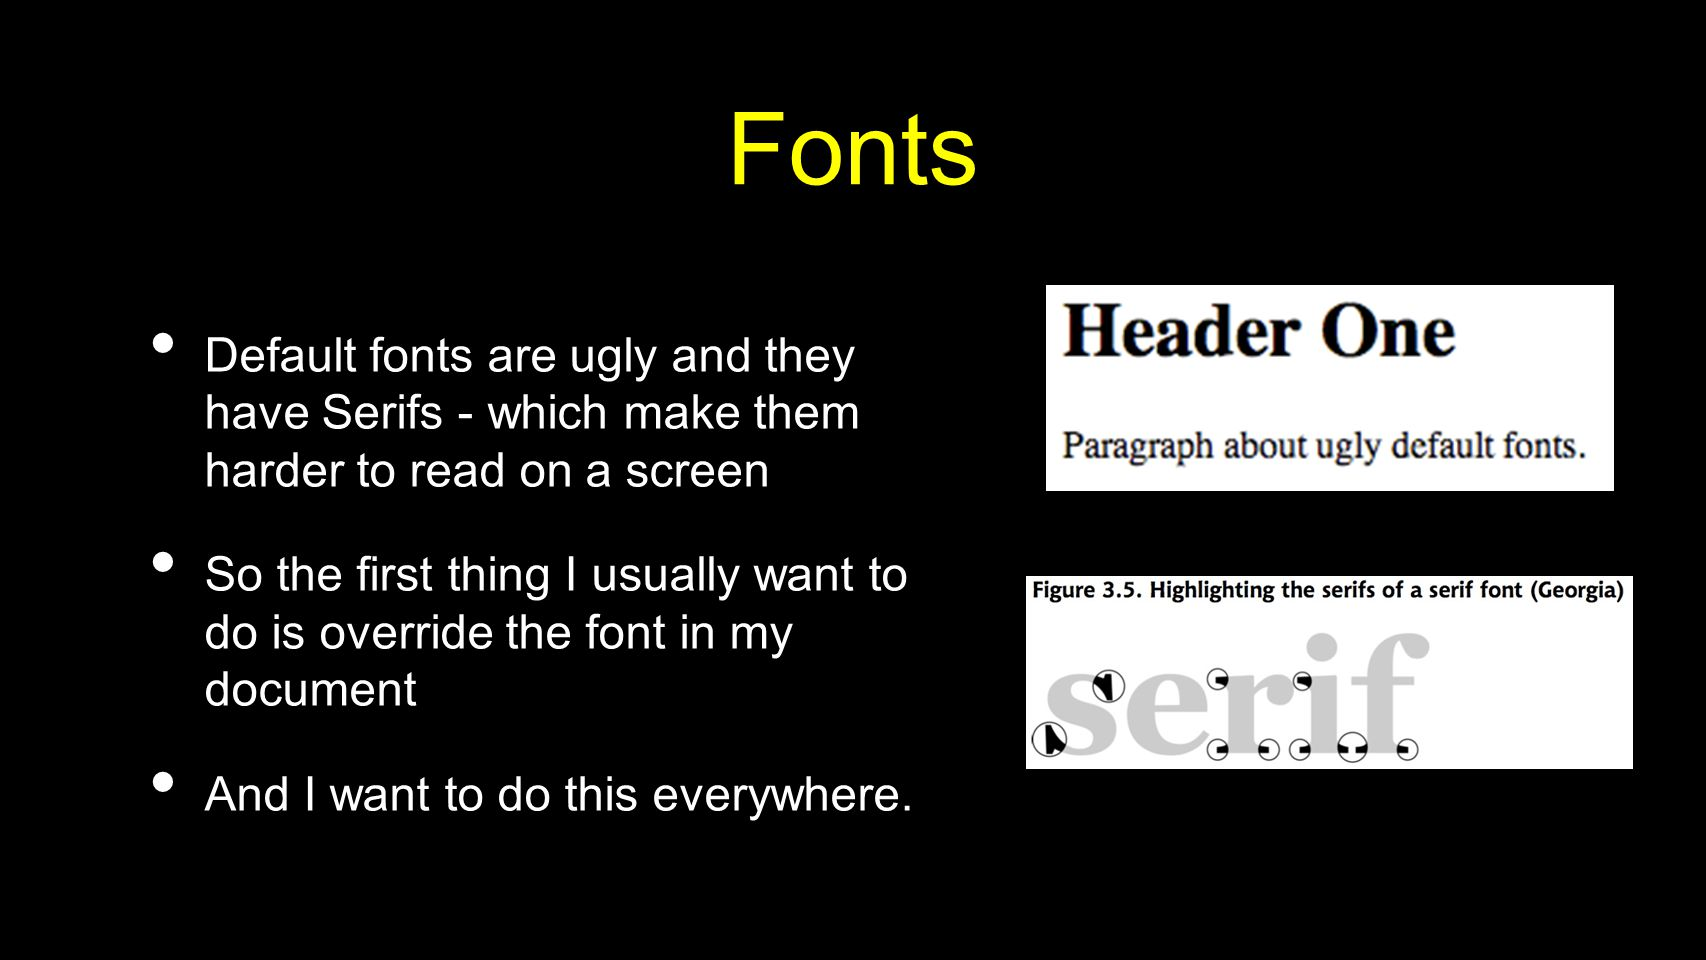 Fonts Default fonts are ugly and they have Serifs - which make them harder to read on a screen So the first thing I usually want to do is override the font in my document And I want to do this everywhere.